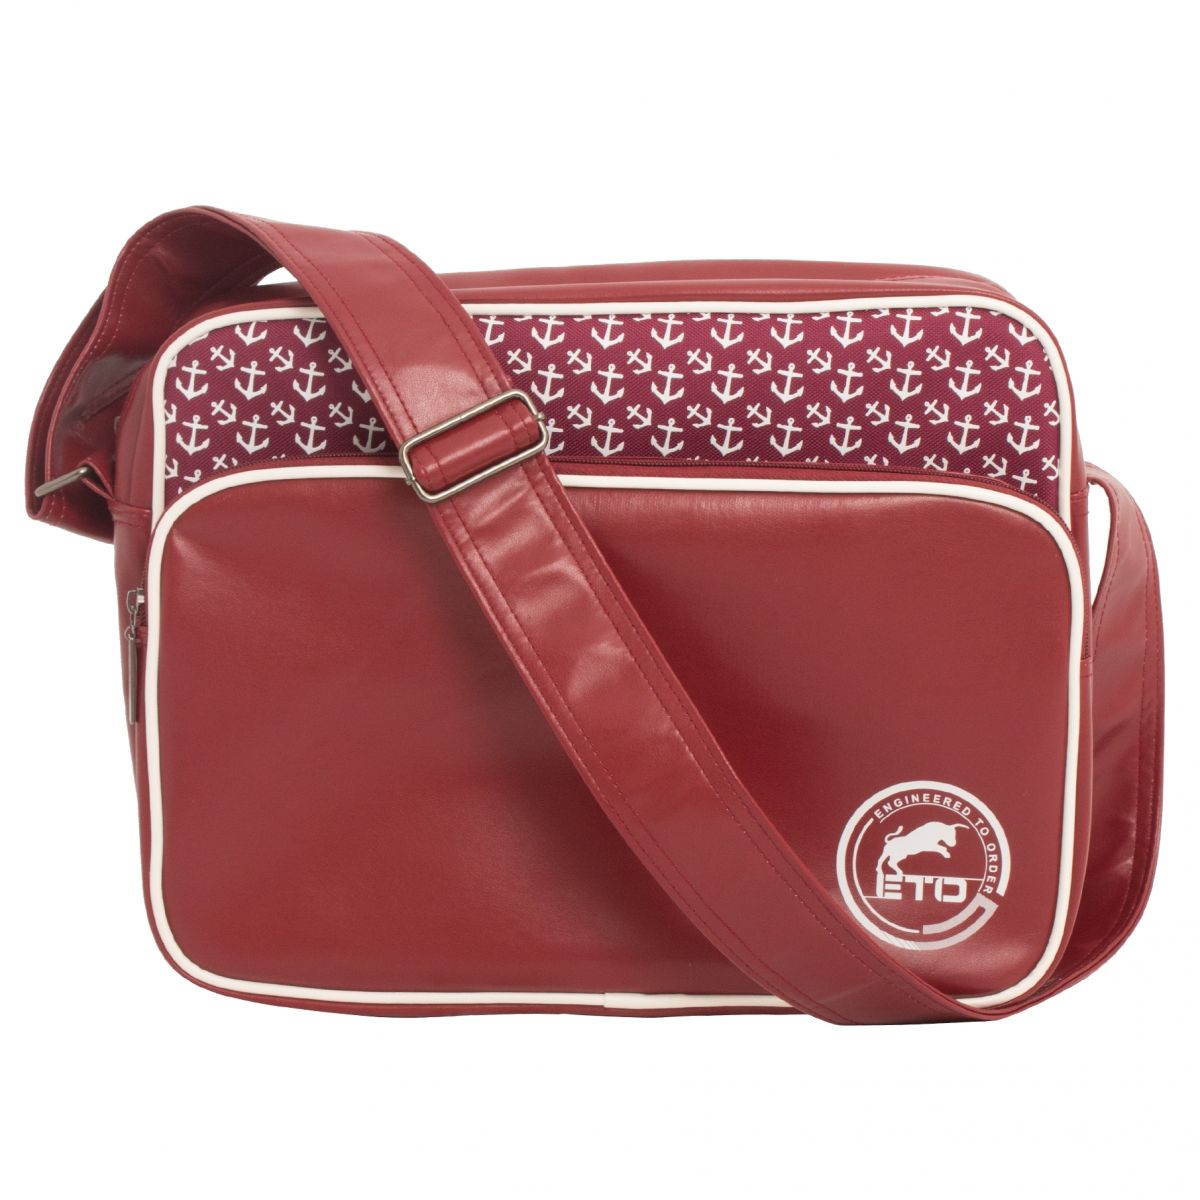 ETO Clearance | Shoulder Bag With Anchor Pattern